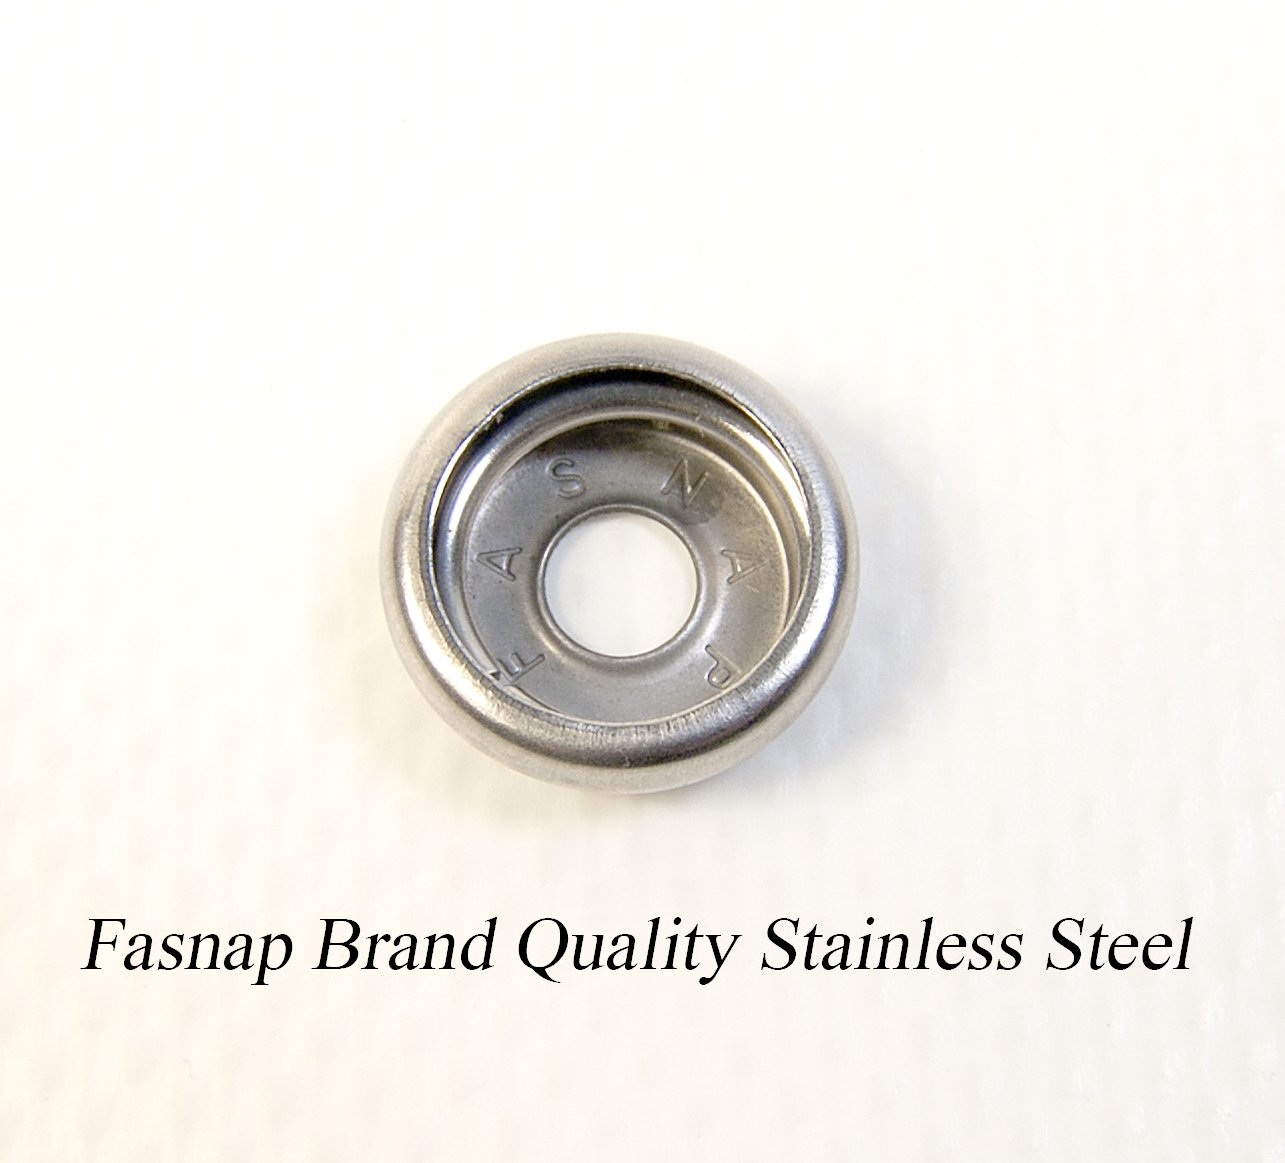 Stainless Steel Caps & Sockets, Marine Grade, 50 Piece Set by Fasnap (Image #6)